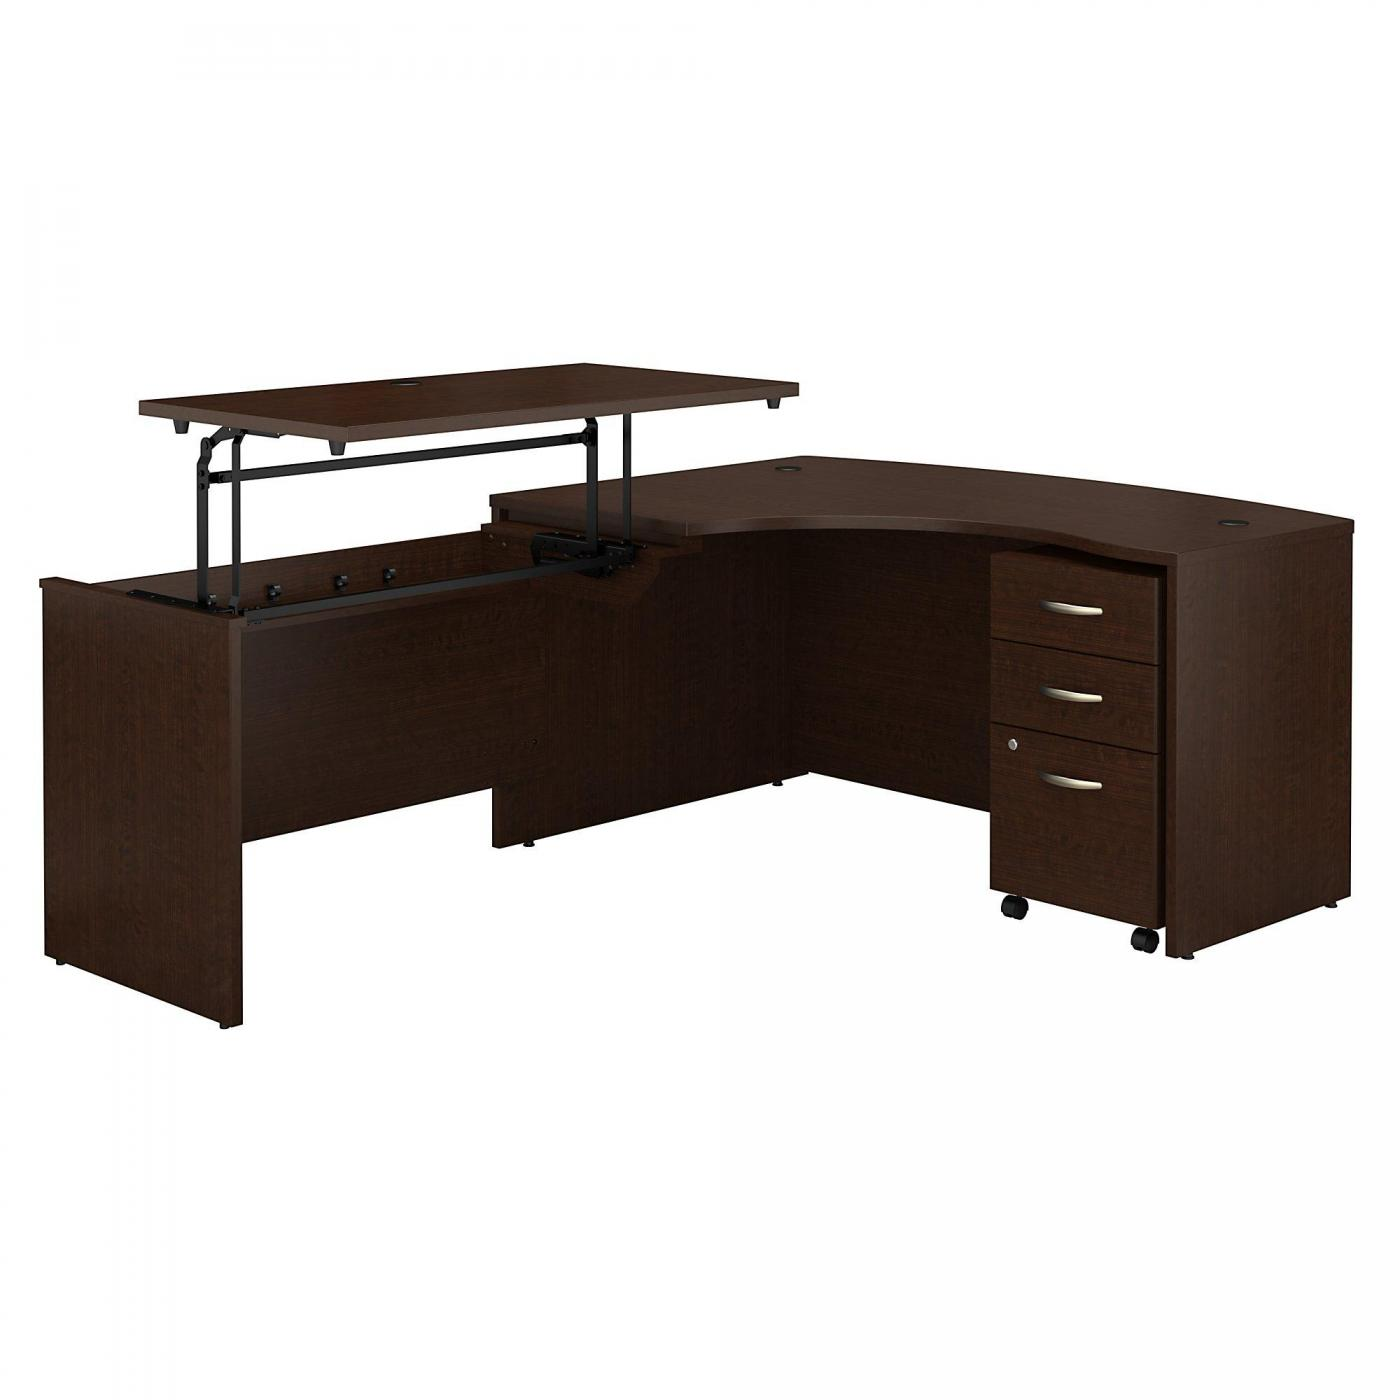 <font color=#c60><b>BUSH BUSINESS FURNITURE SERIES C 60W X 43D RIGHT HAND 3 POSITION SIT TO STAND L SHAPED DESK WITH MOBILE FILE CABINET. FREE SHIPPING. VIDEO:</font></b></font></b>